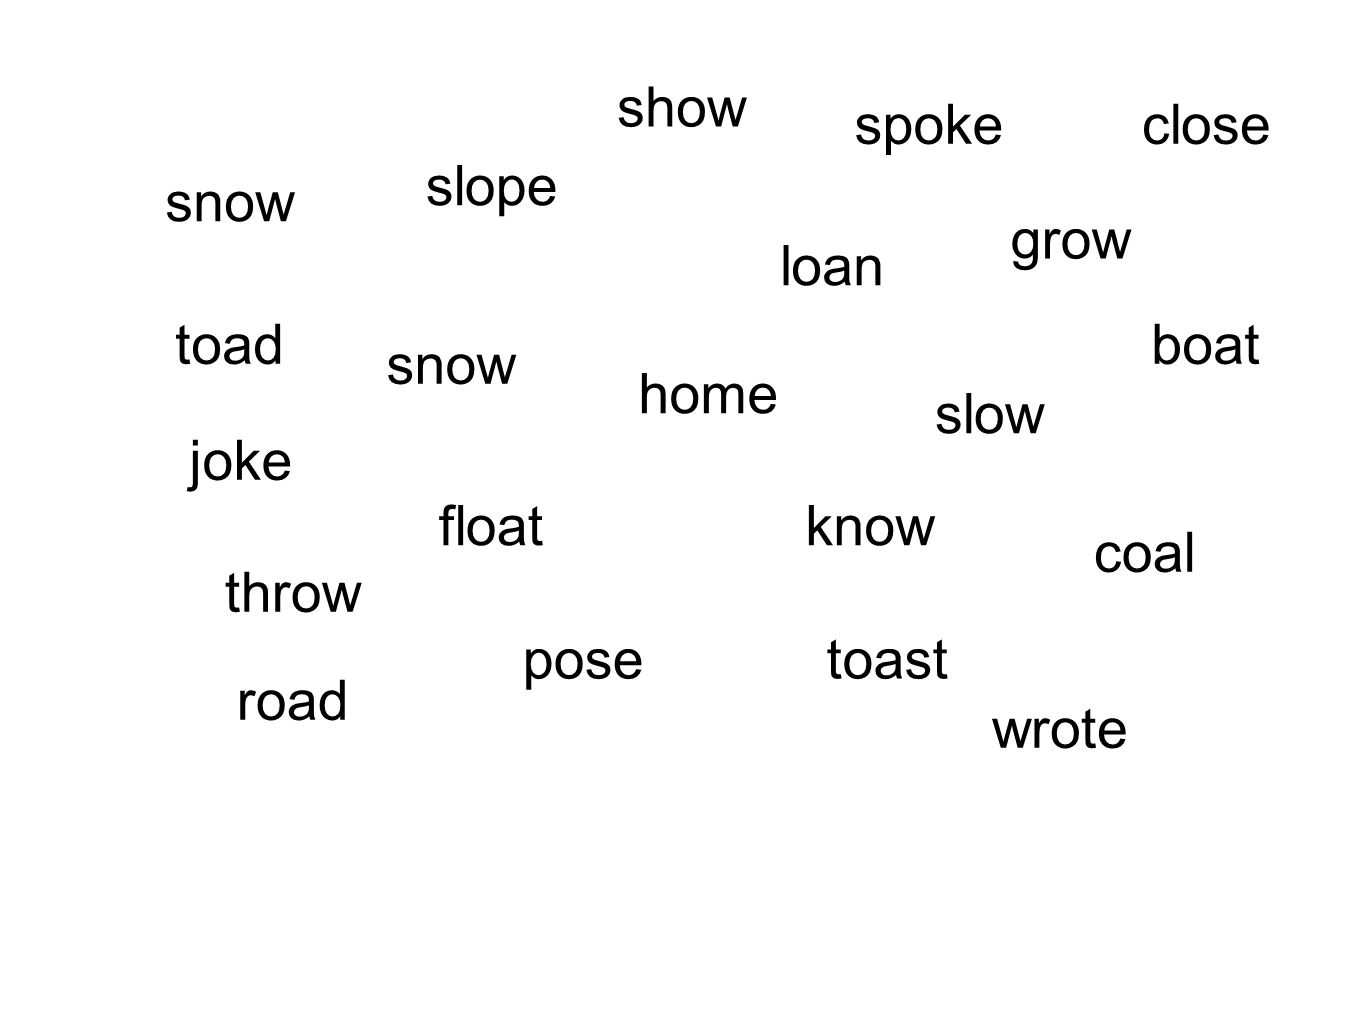 show float pose home know toast coal slow loan boat grow spokeclose wrote road snow toad joke throw snow slope